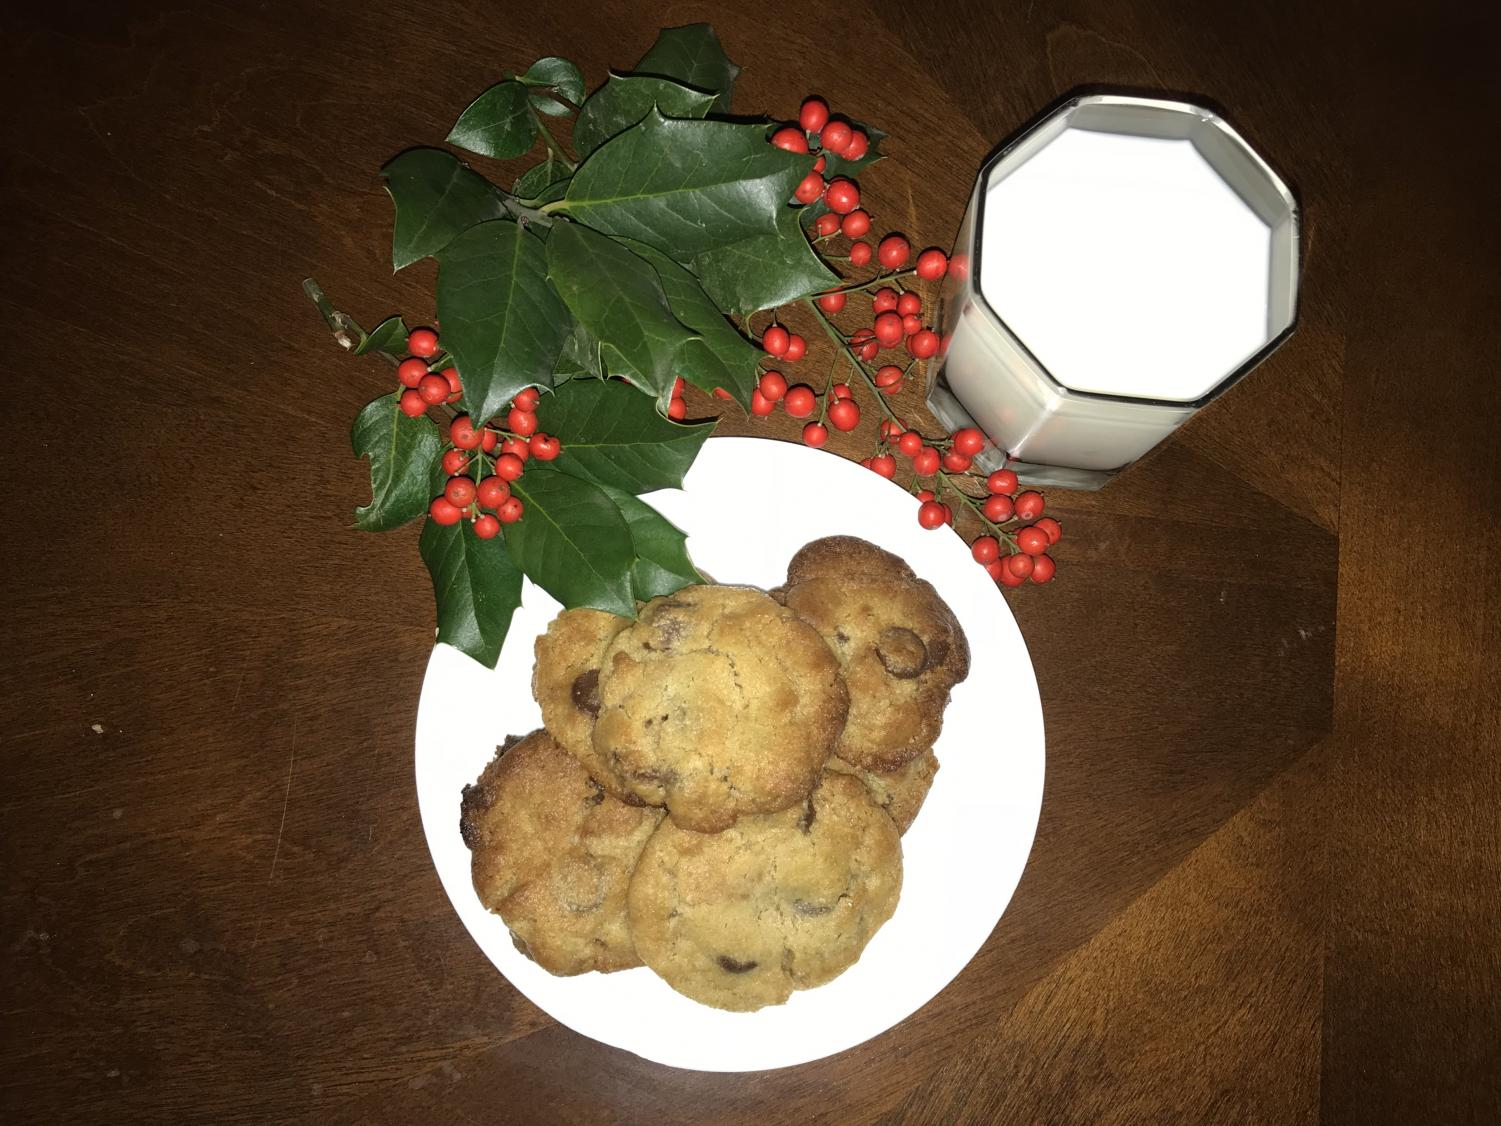 Most people believe that the only snack one can give to Santa Claus consists of cookies and a glass of milk.